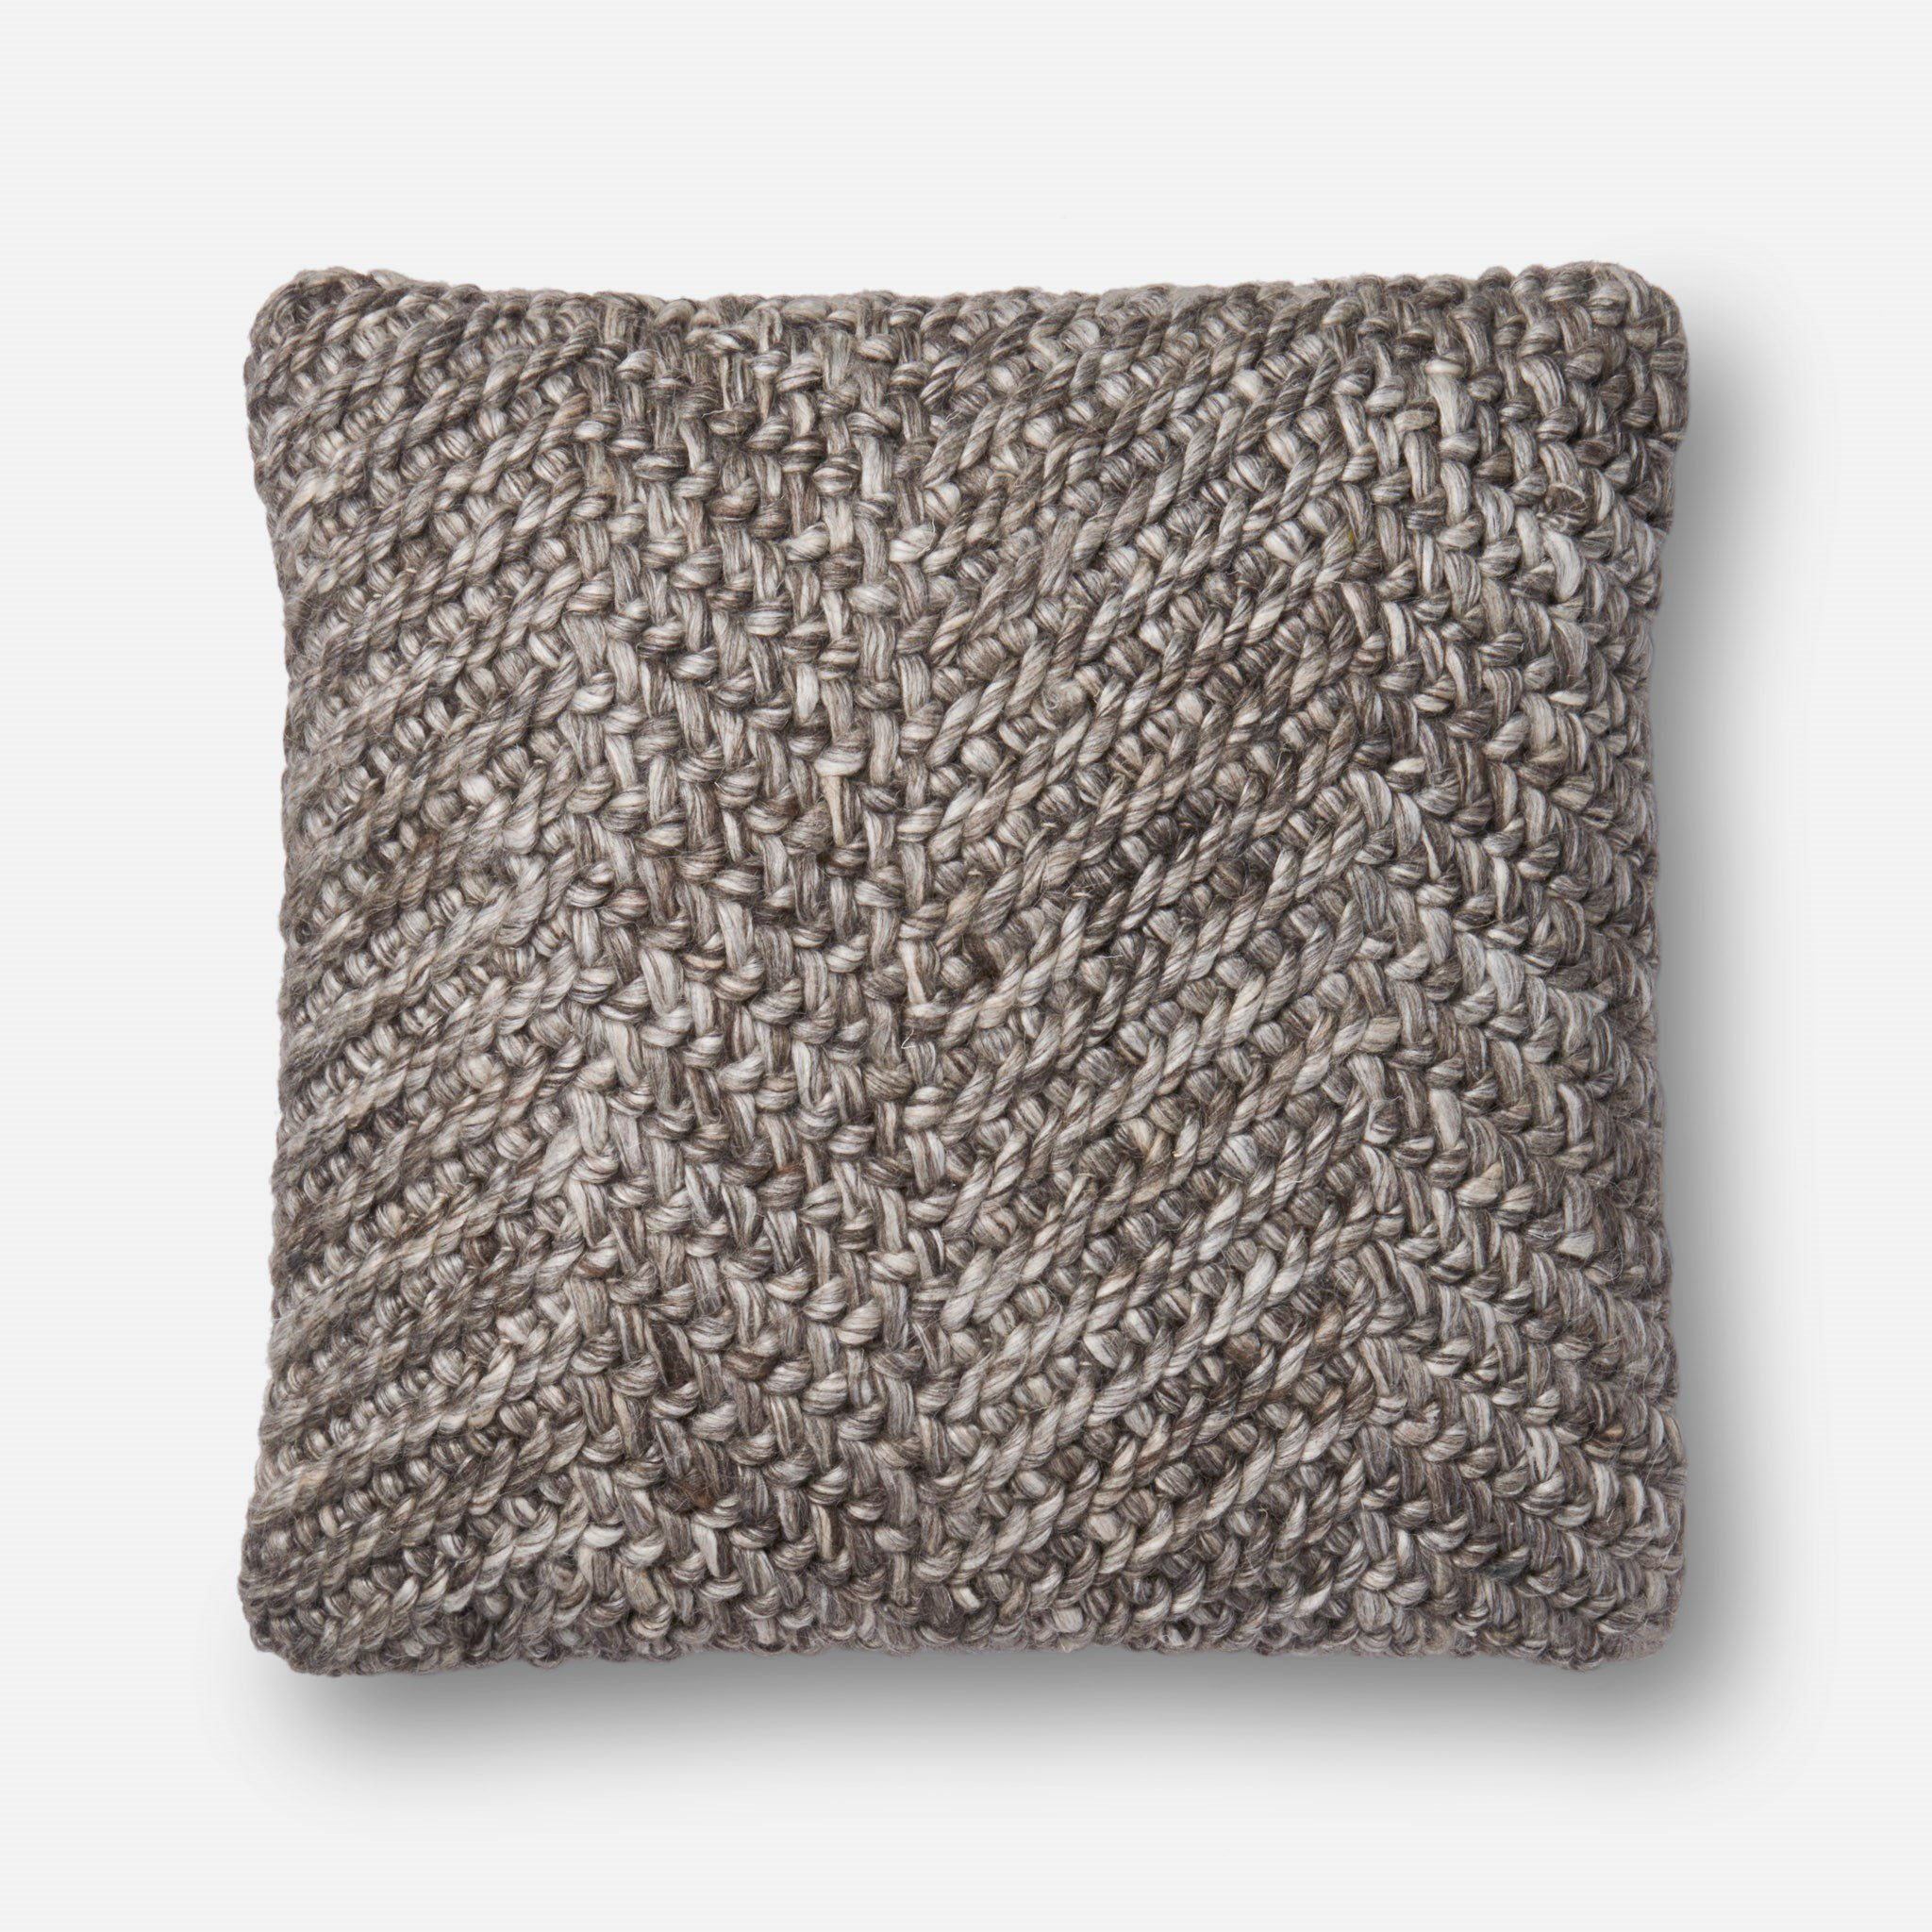 Loloi Pillow, Down Filled - Grey Pillow Cover, 22'' x 22'' by Loloi